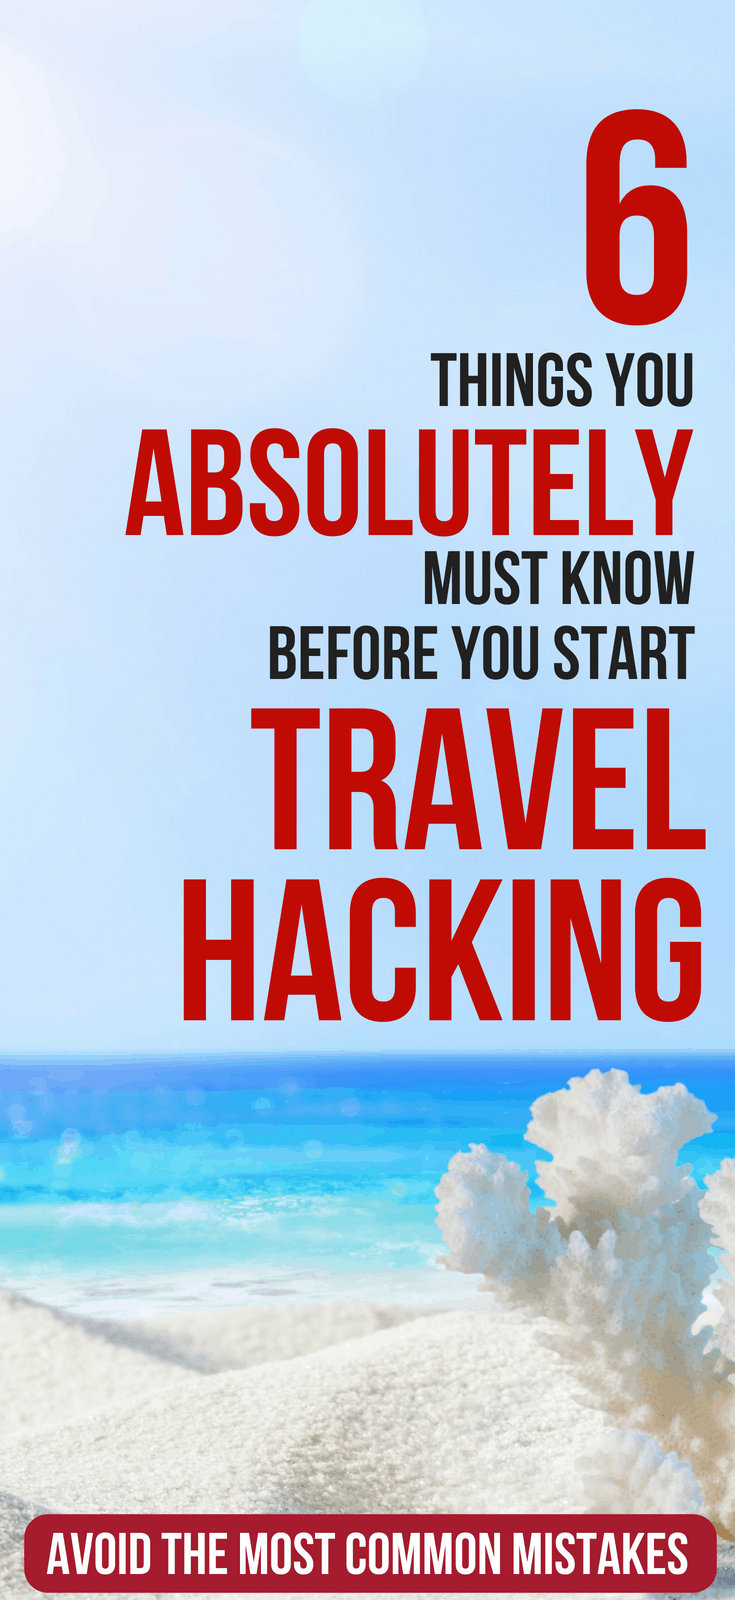 6 Things You Need To Know Before You Start Travel Hacking travel hacking for beginners | travel hacking tips | best travel hacks tips and tricks | best credit card for travel miles | budget travel hacks #thewaystowealth #travel #travelhacking #travelhacks